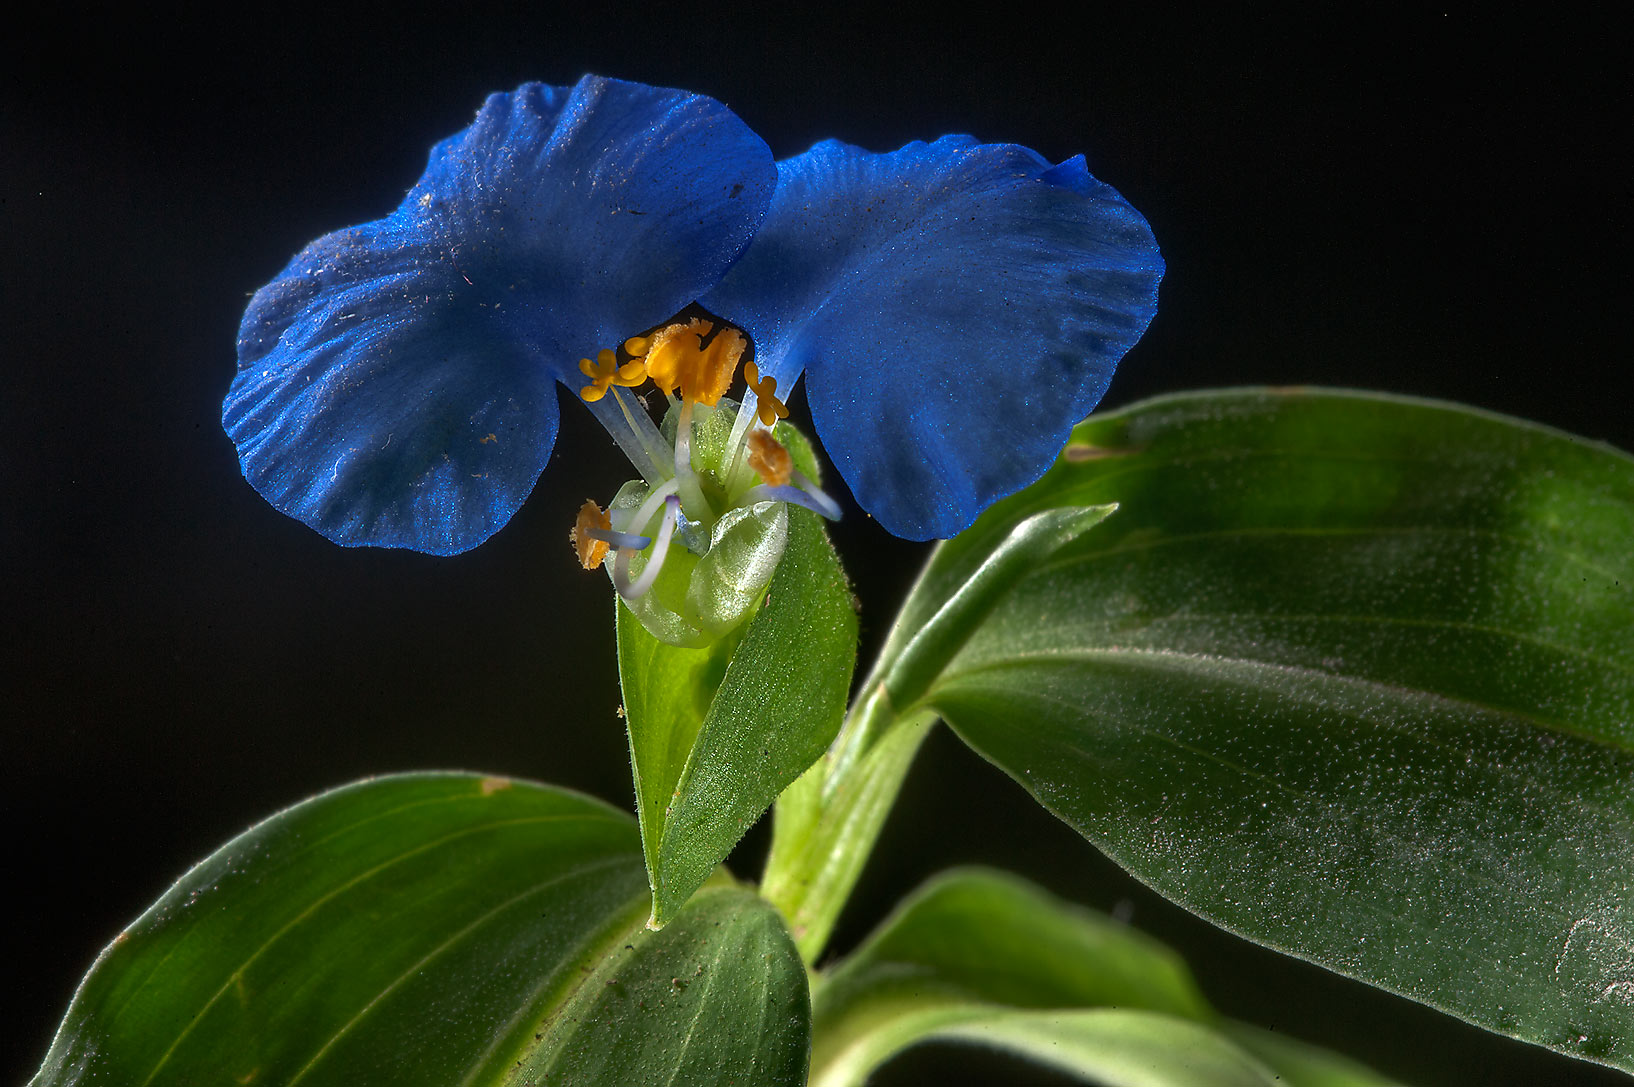 Blooming Benghal dayflower (tropical spiderwort...Onaiza area near West Bay. Doha, Qatar